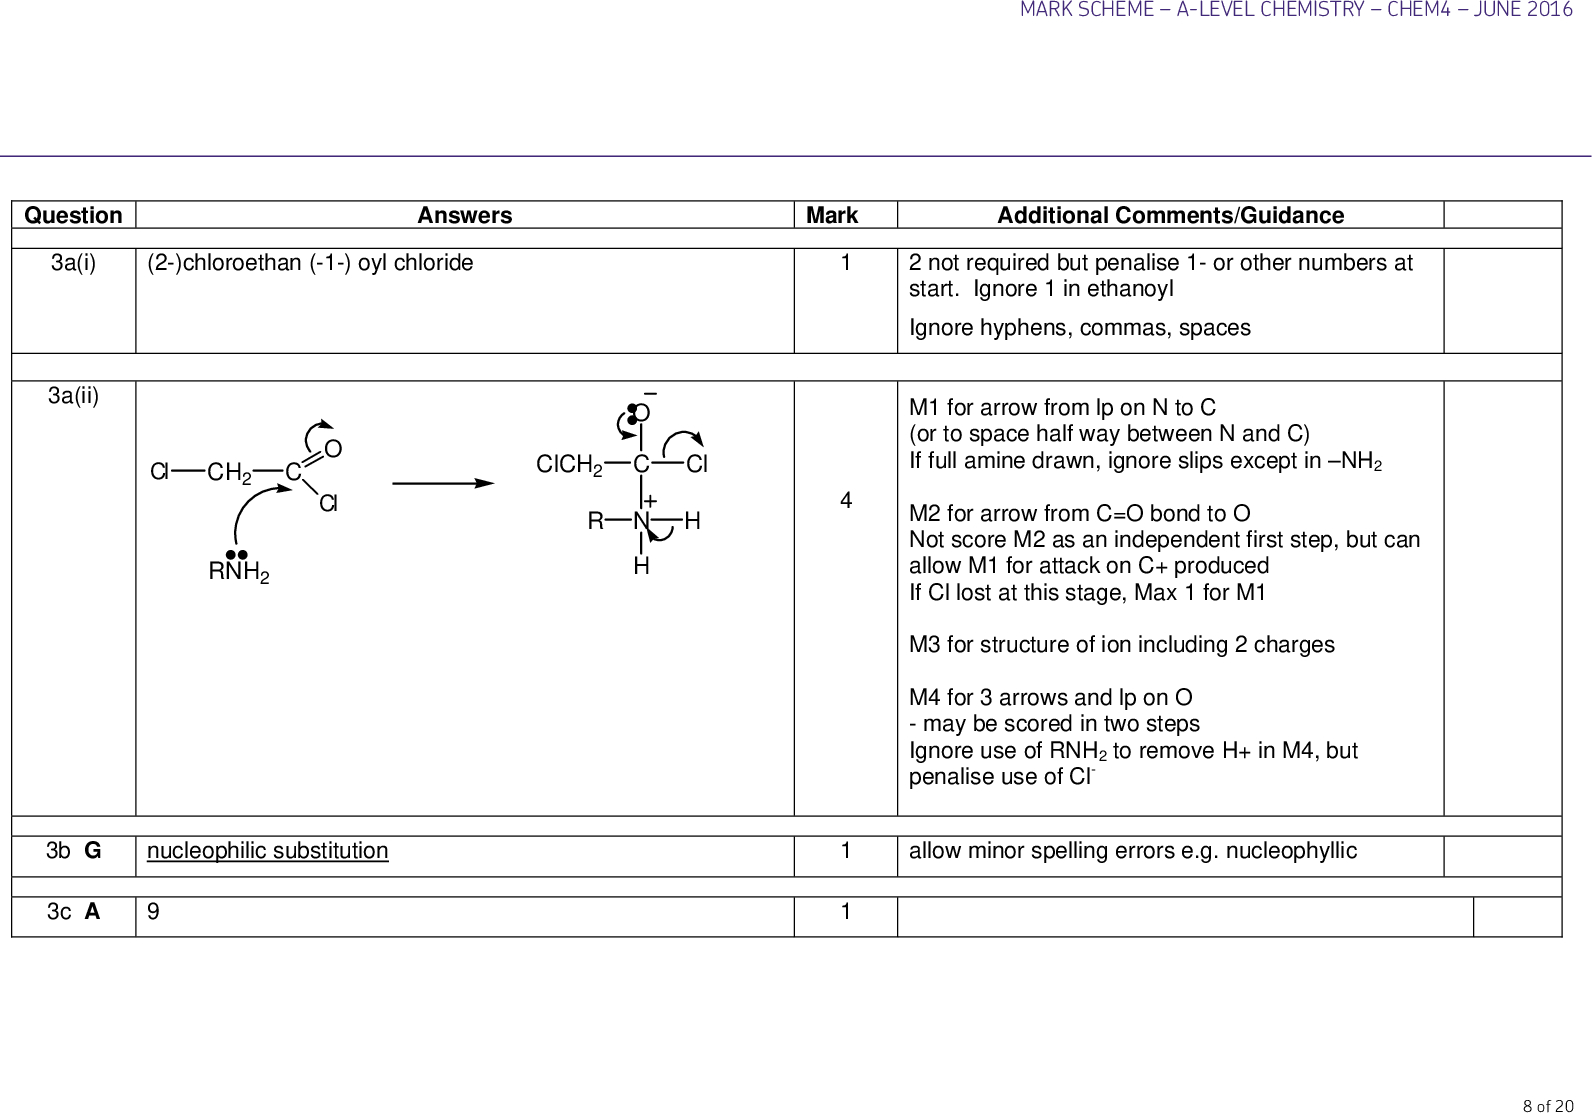 question answers a i chloroethan oyl chloride a ii cl ch c cl rnh clch c n h cl b g nucleophilic substitution c a mark scheme a level chemistry chem june mark additional comments guidance not required but penalise or other numbers at start ignore in ethanoyl ignore hyphens commas spaces m for arrow from lp on n to c or to space half way between n and c if full amine drawn ignore slips except in nh m for arrow from c o bond to o not score m as an independent first step but can allow m for attack on c produced if cl lost at this stage max for m m for structure of ion including charges m for arrows and lp on o may be scored in two steps ignore use of rnh to remove h in m but penalise use of cl allow minor spelling errors e g nucleophyllic of mark scheme a level chemistry chem june d mr h e tertiary amine or o amine or iiio amine if a given ce can only score if answer given is b m lp on nb or on b m alkyl groups donate electron density or positive inductive effect or electron donating groups attached m lp on nb more available or protonated amine stabilised or better lp donor h acceptor ignore reference to nucleophiles salt is ionic more soluble in blood body fluids water f i f ii total m scores marks m if mr not shown can score m if their answer their no of h ignore n substituted note there is no mark for b alone alternatives m lp on na or on a m lp or electrons on na delocalised into ring towards o in c o m lp on na less available to bond to h proton accept independent marks of